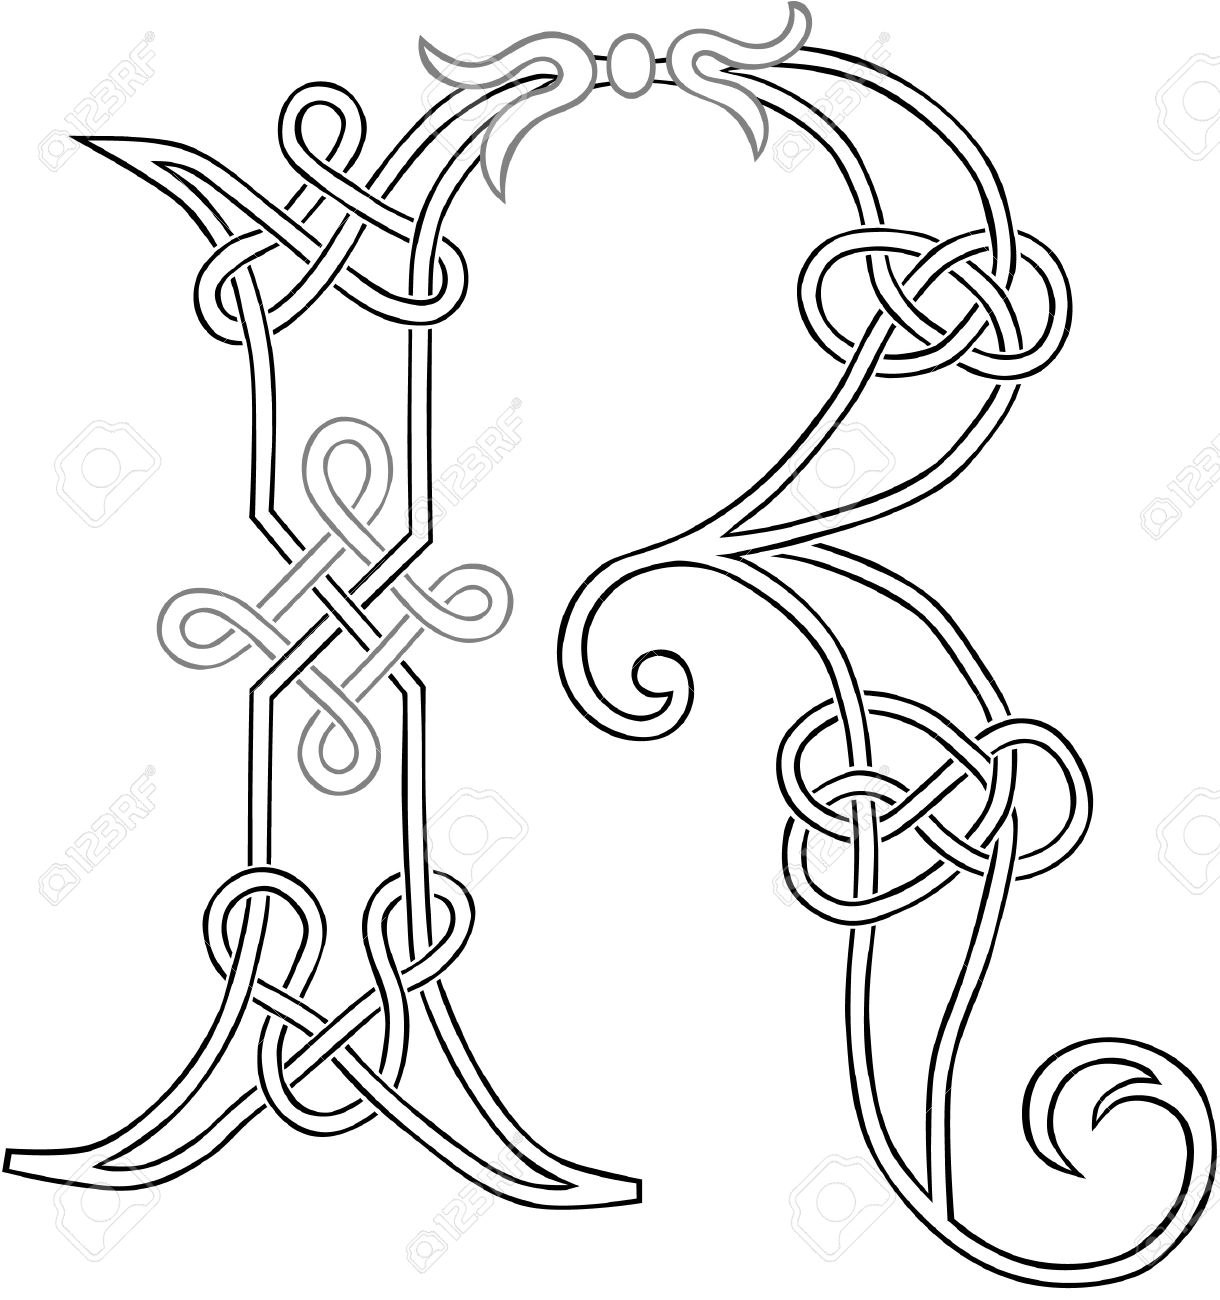 A Celtic Knot-work Capital Letter R Stylized Outline Royalty Free ...